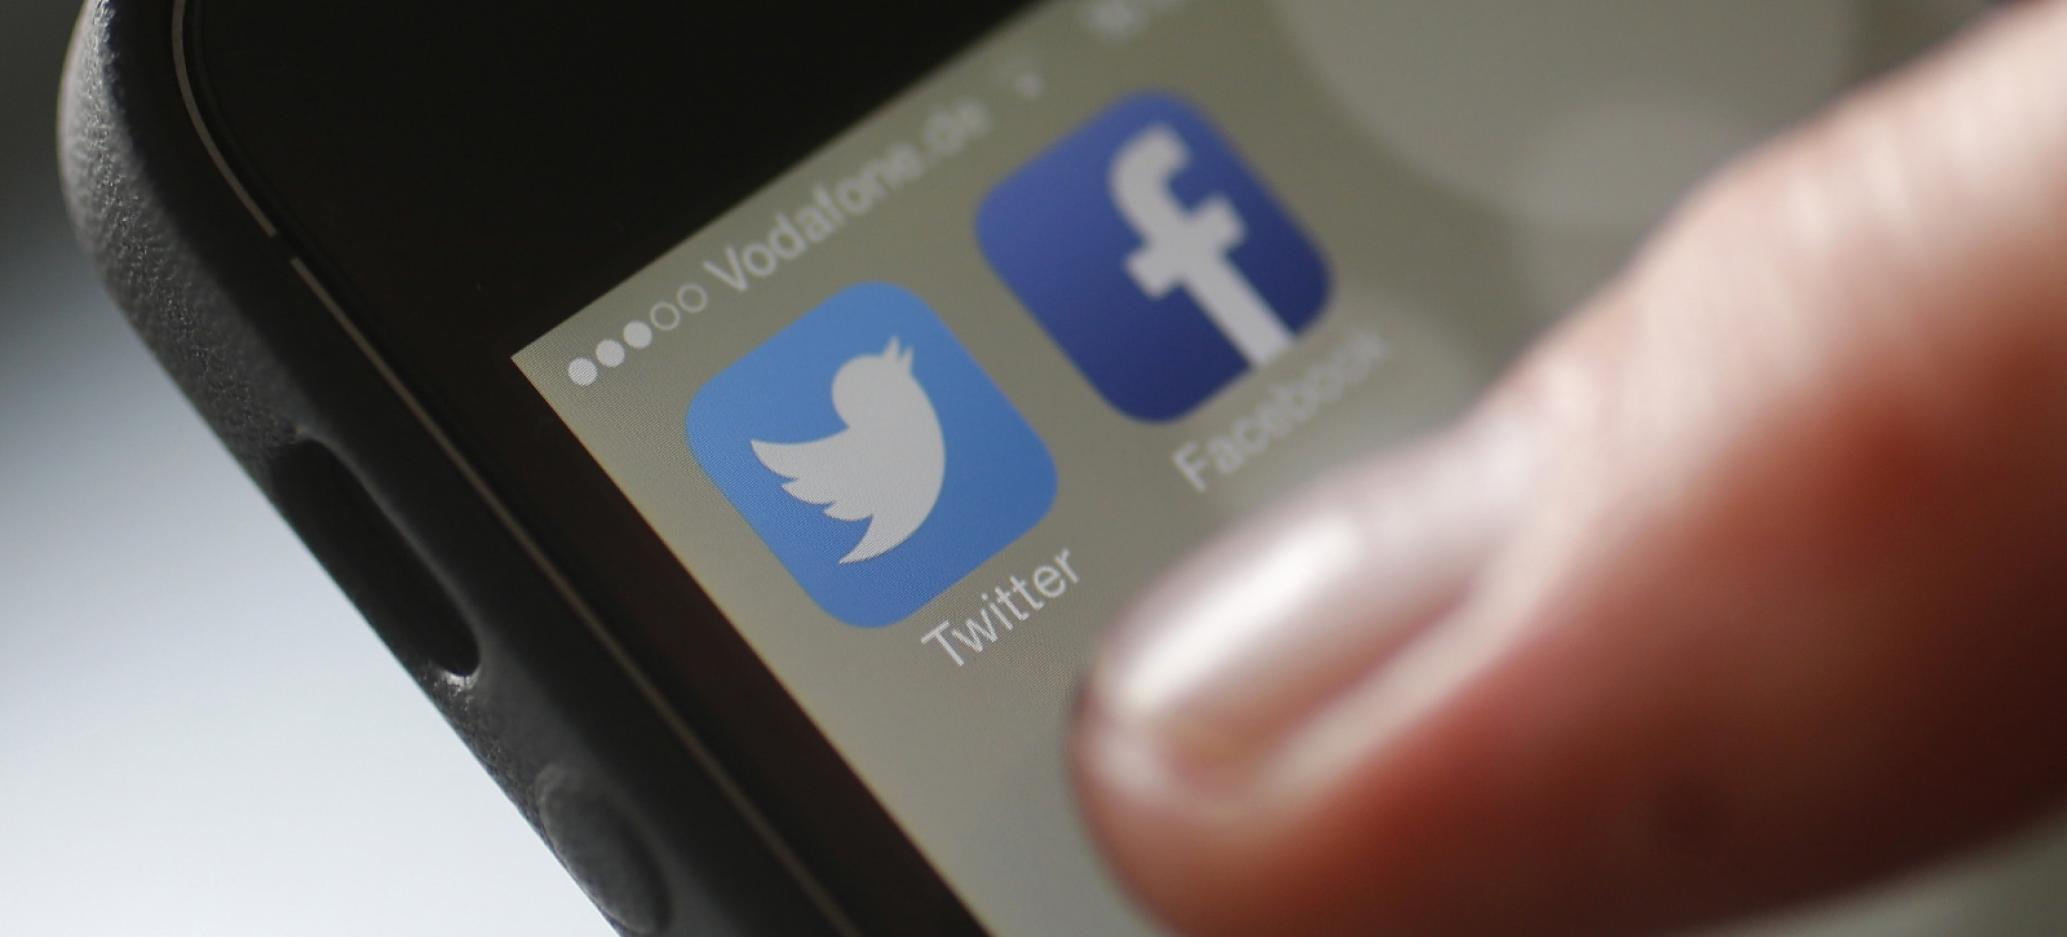 Nazi Tweets And Swastikas on High-Profile Twitter Accounts - A Hacking Story